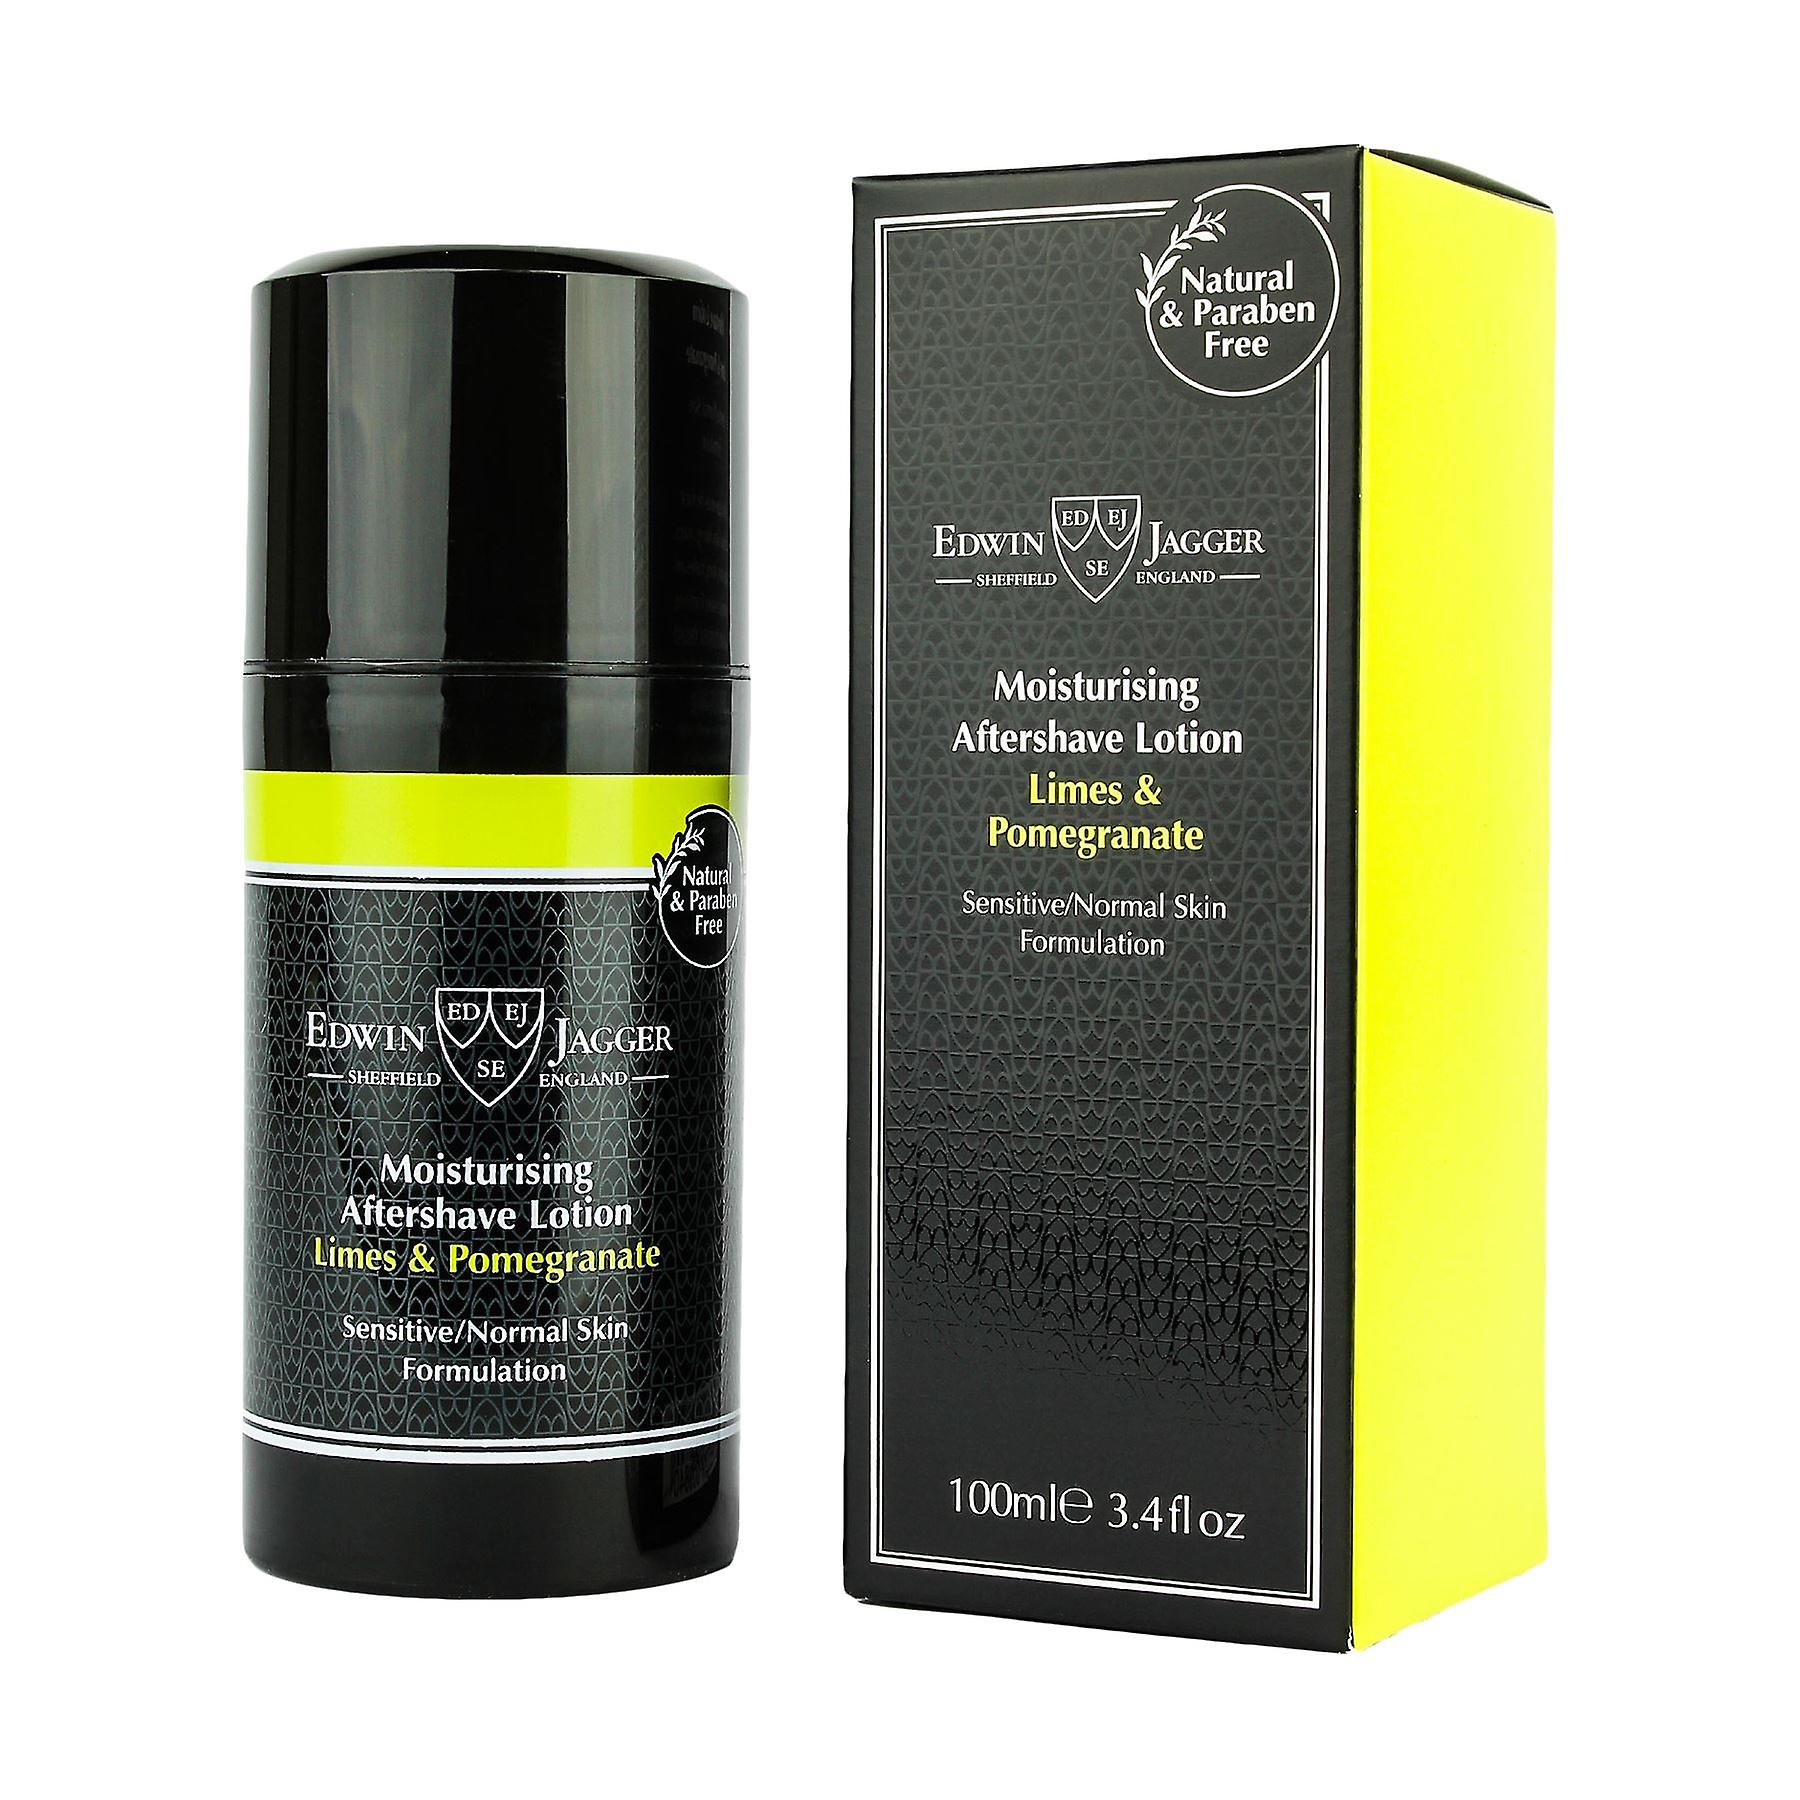 Edwin Jagger Moisturising Aftershave Lotion Limes & Pomegranate 100ml